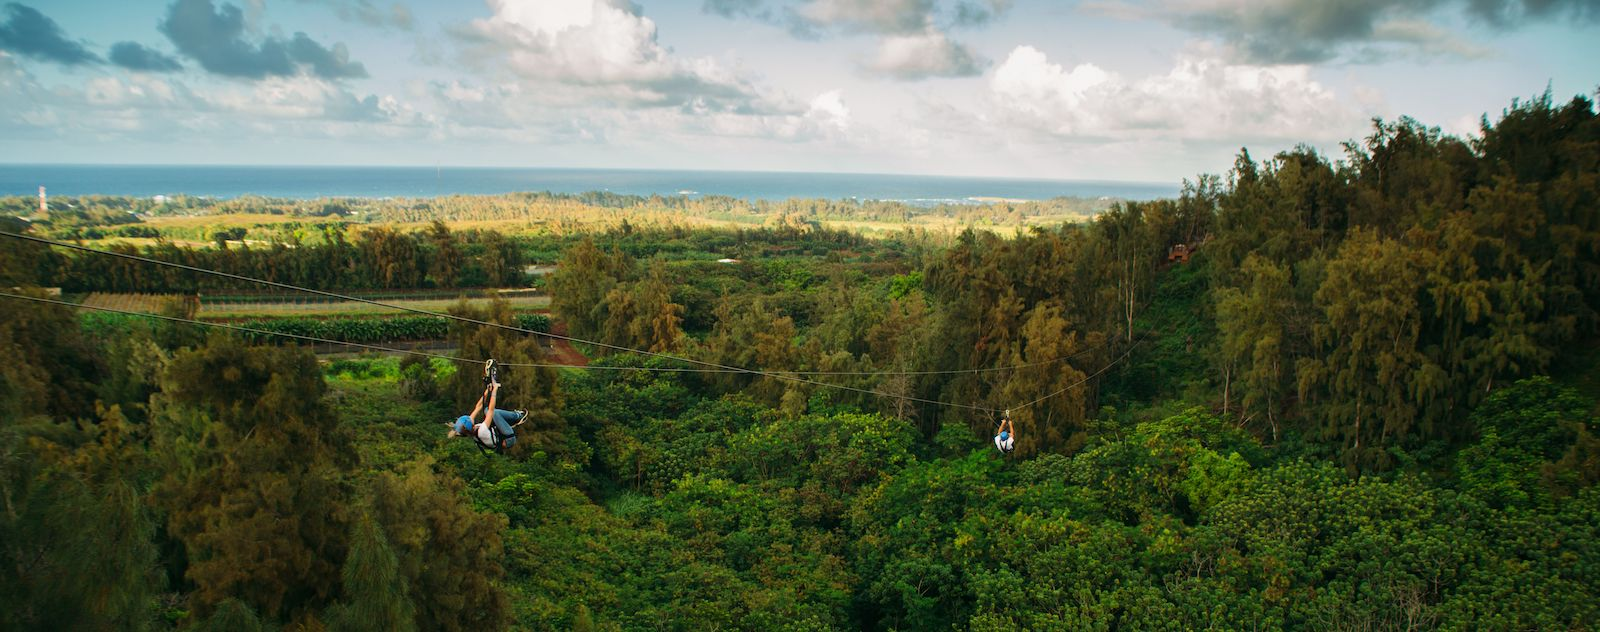 5 Things That You Will Enjoy While Experiencing Our Ziplines on Oahu